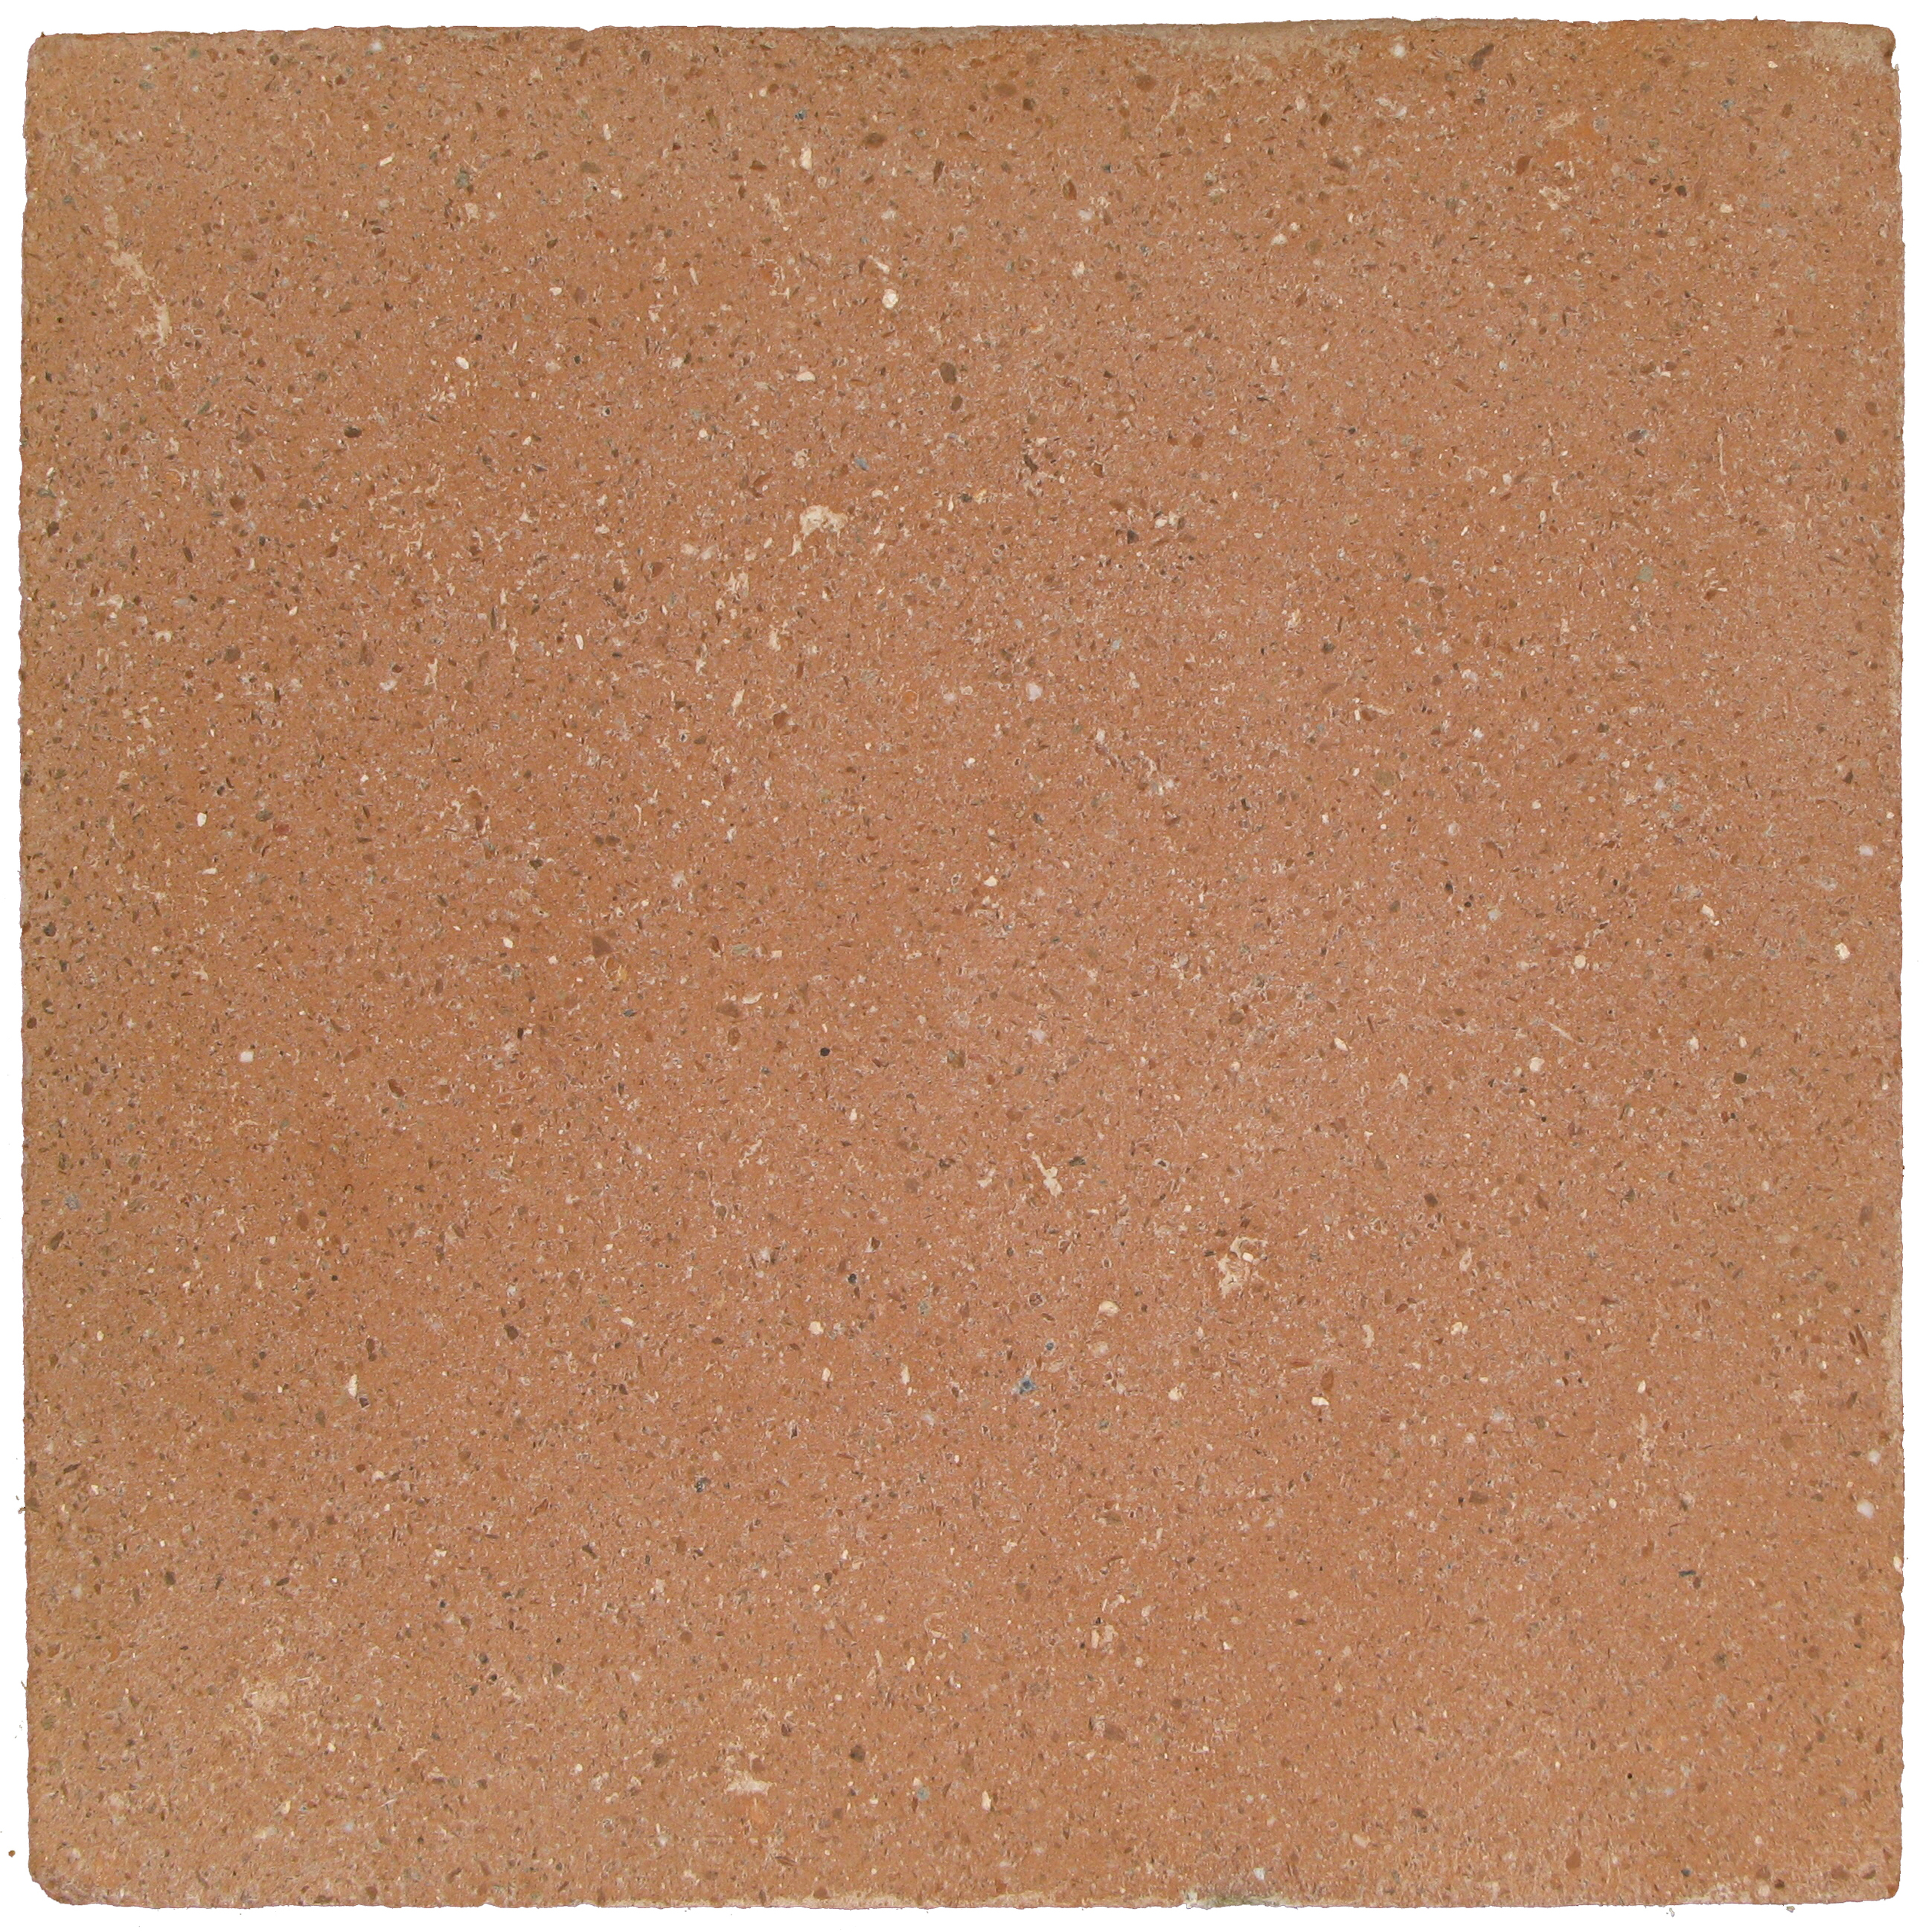 TOSCANA Terracotta & Marble  Terracotta: Cotto PRATO  Color/Finish: Old Patina NATURAL(TCPN)